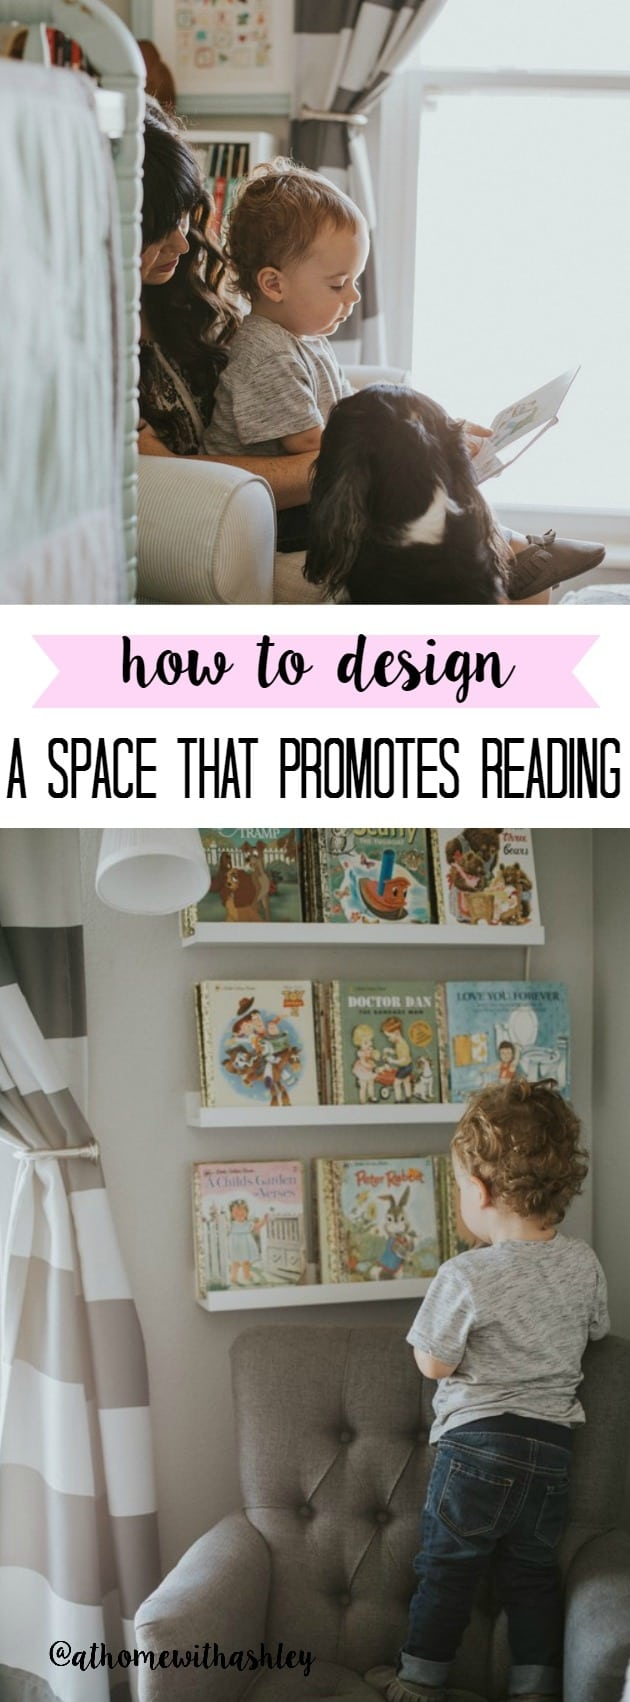 how-to-design-a-space-that-promotes-reading